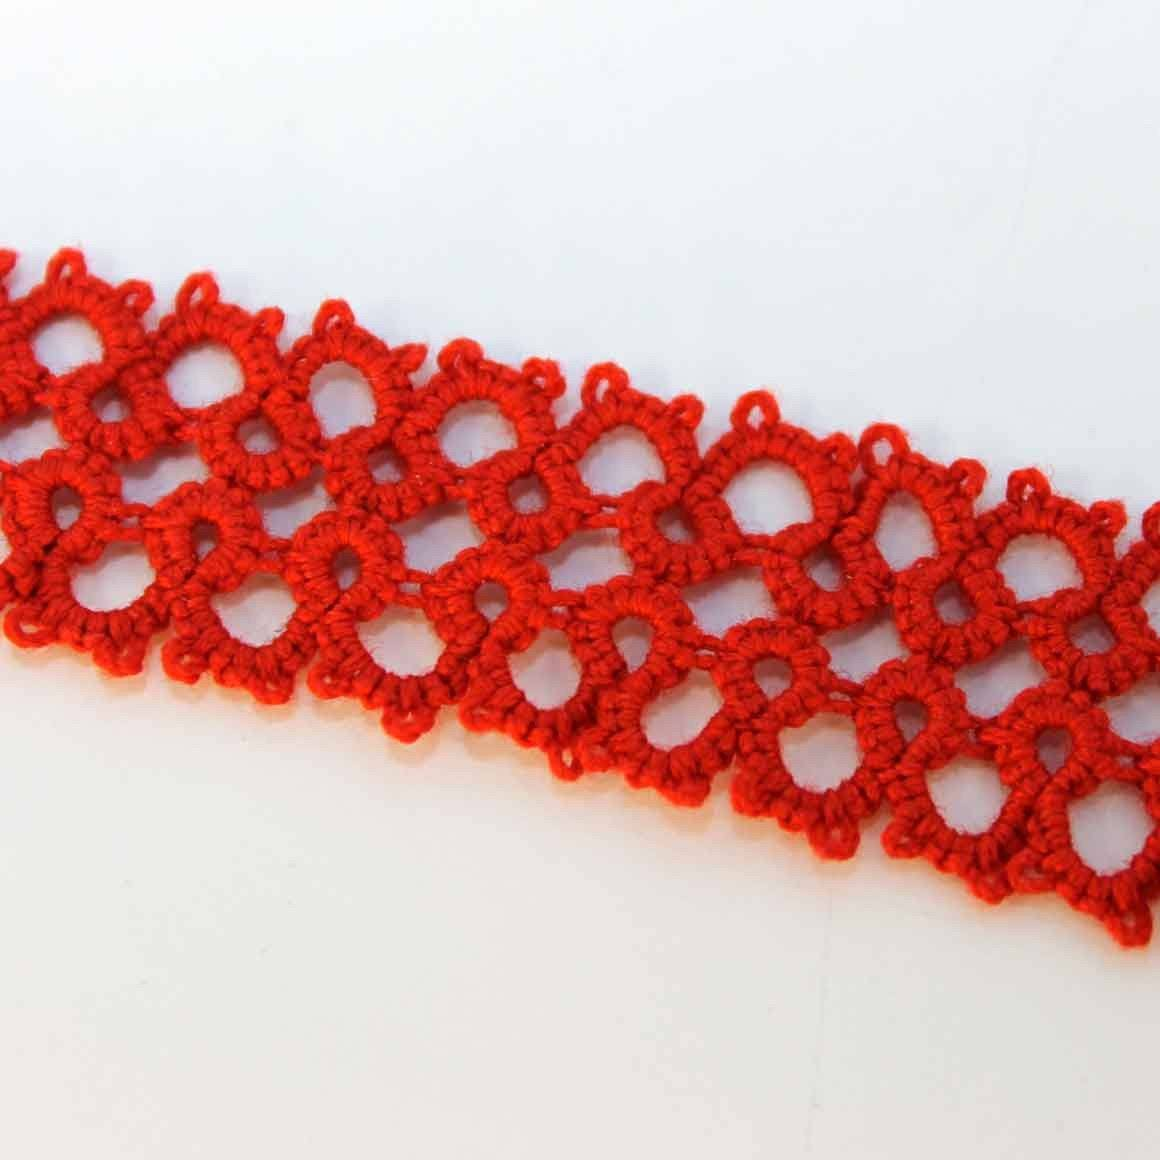 Fair Trade Ethical Tatted Headband School Design Accessories Uplift Fair Trade Red